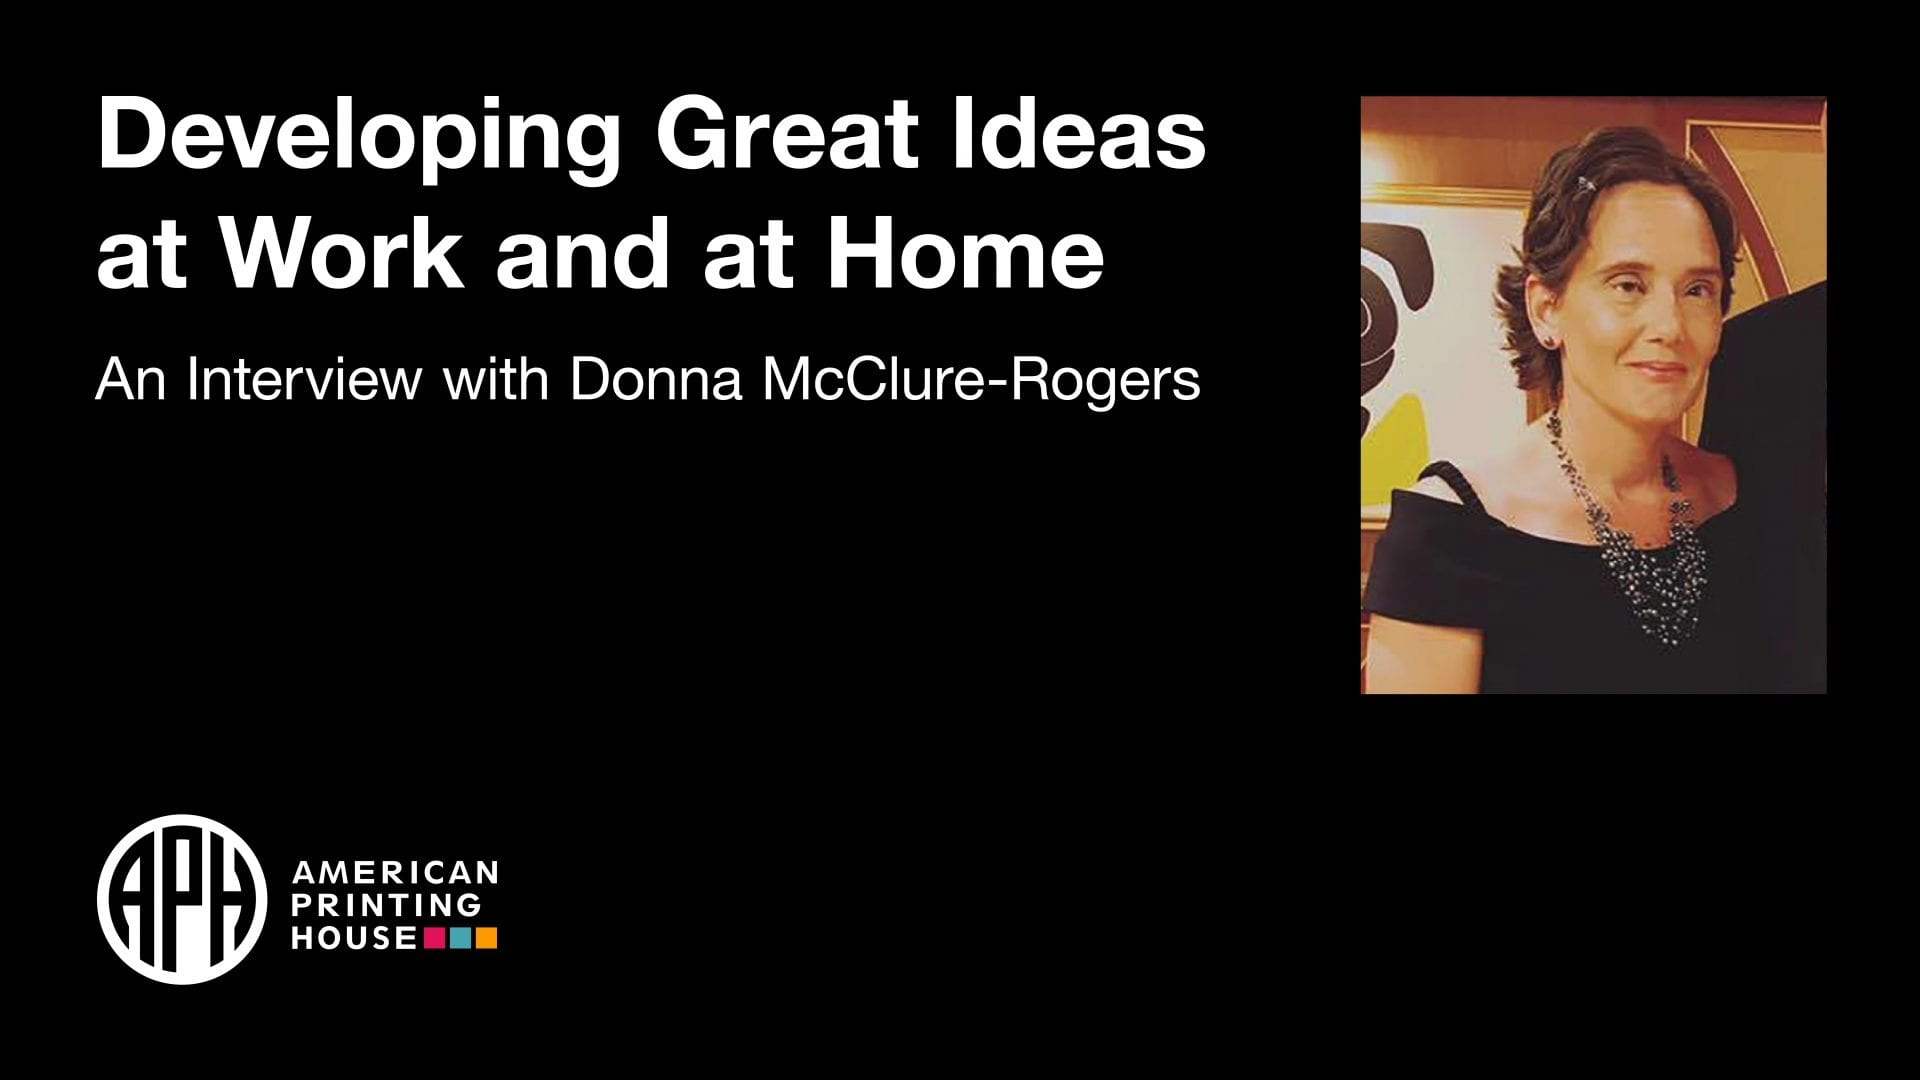 """image of Donna. text reads """"Developing Great Ideas at Work and at Home. An Interview with Donna McClure-Rogers."""" APH logo"""